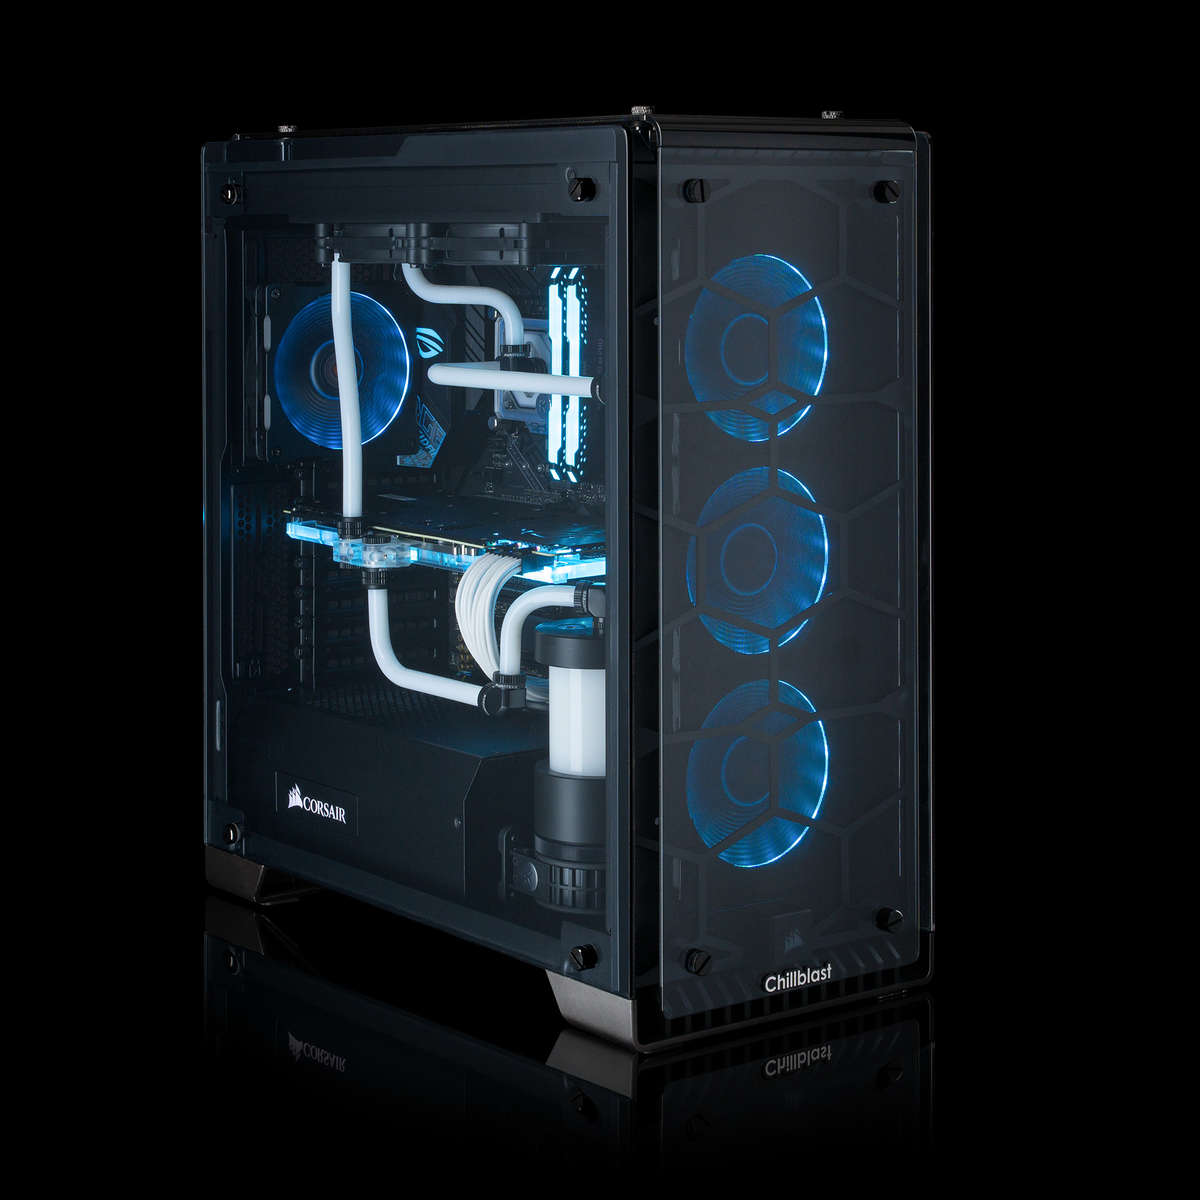 Image of a watercooled Chillblast Fusion Hailstorm X RGB Gaming PC with glowing blue fans